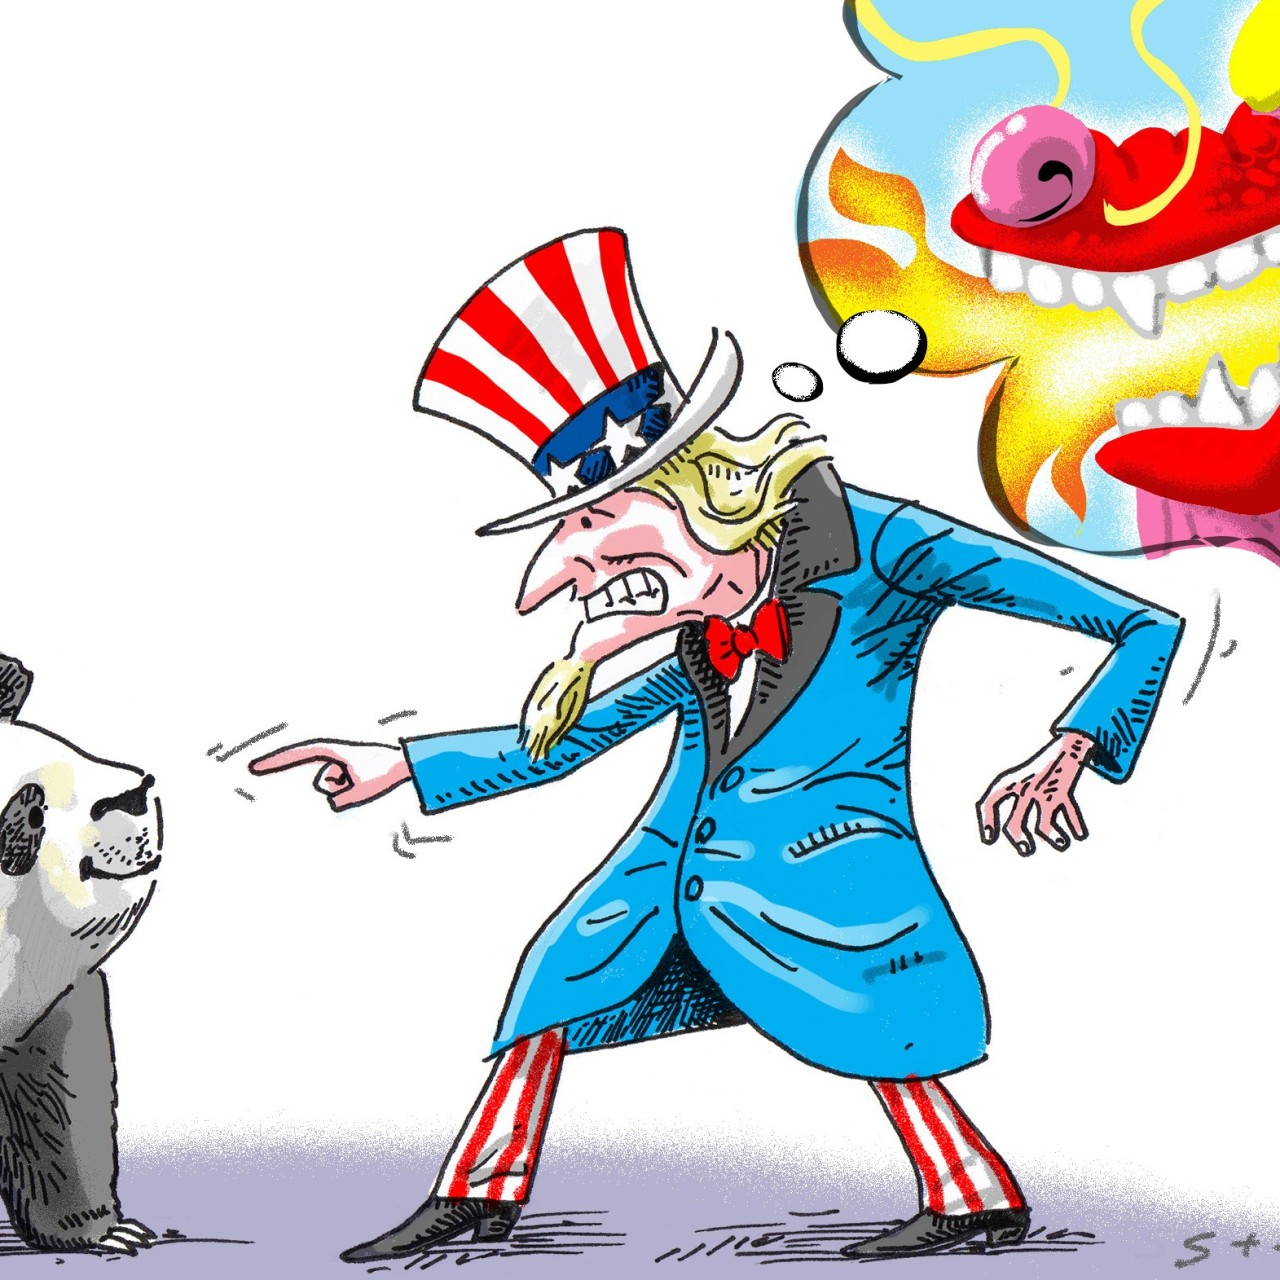 America's latest 'red scare' is overblown  China is not